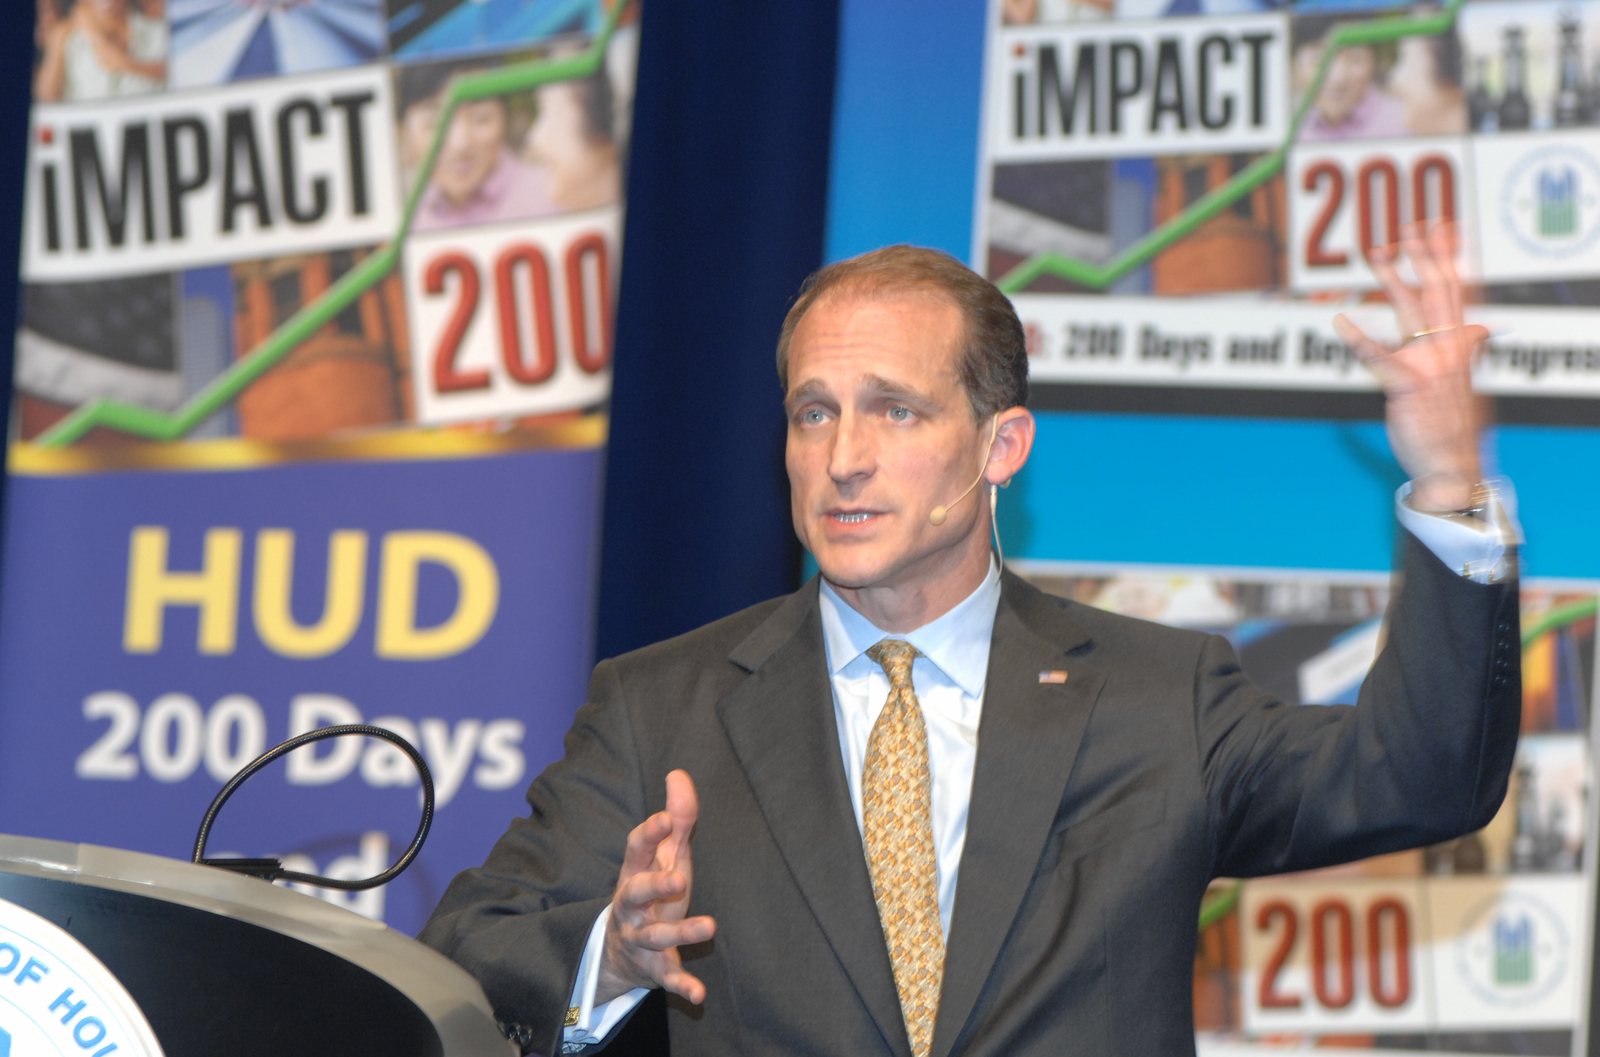 """Town Hall Meeting on """"Impact 200"""" - Town hall meeting, [with Secretary Steve Preston and other officials], concerning """"Impact 200: HUD--200 Days and Beyond of Progress,"""" at HUD Headquarters"""